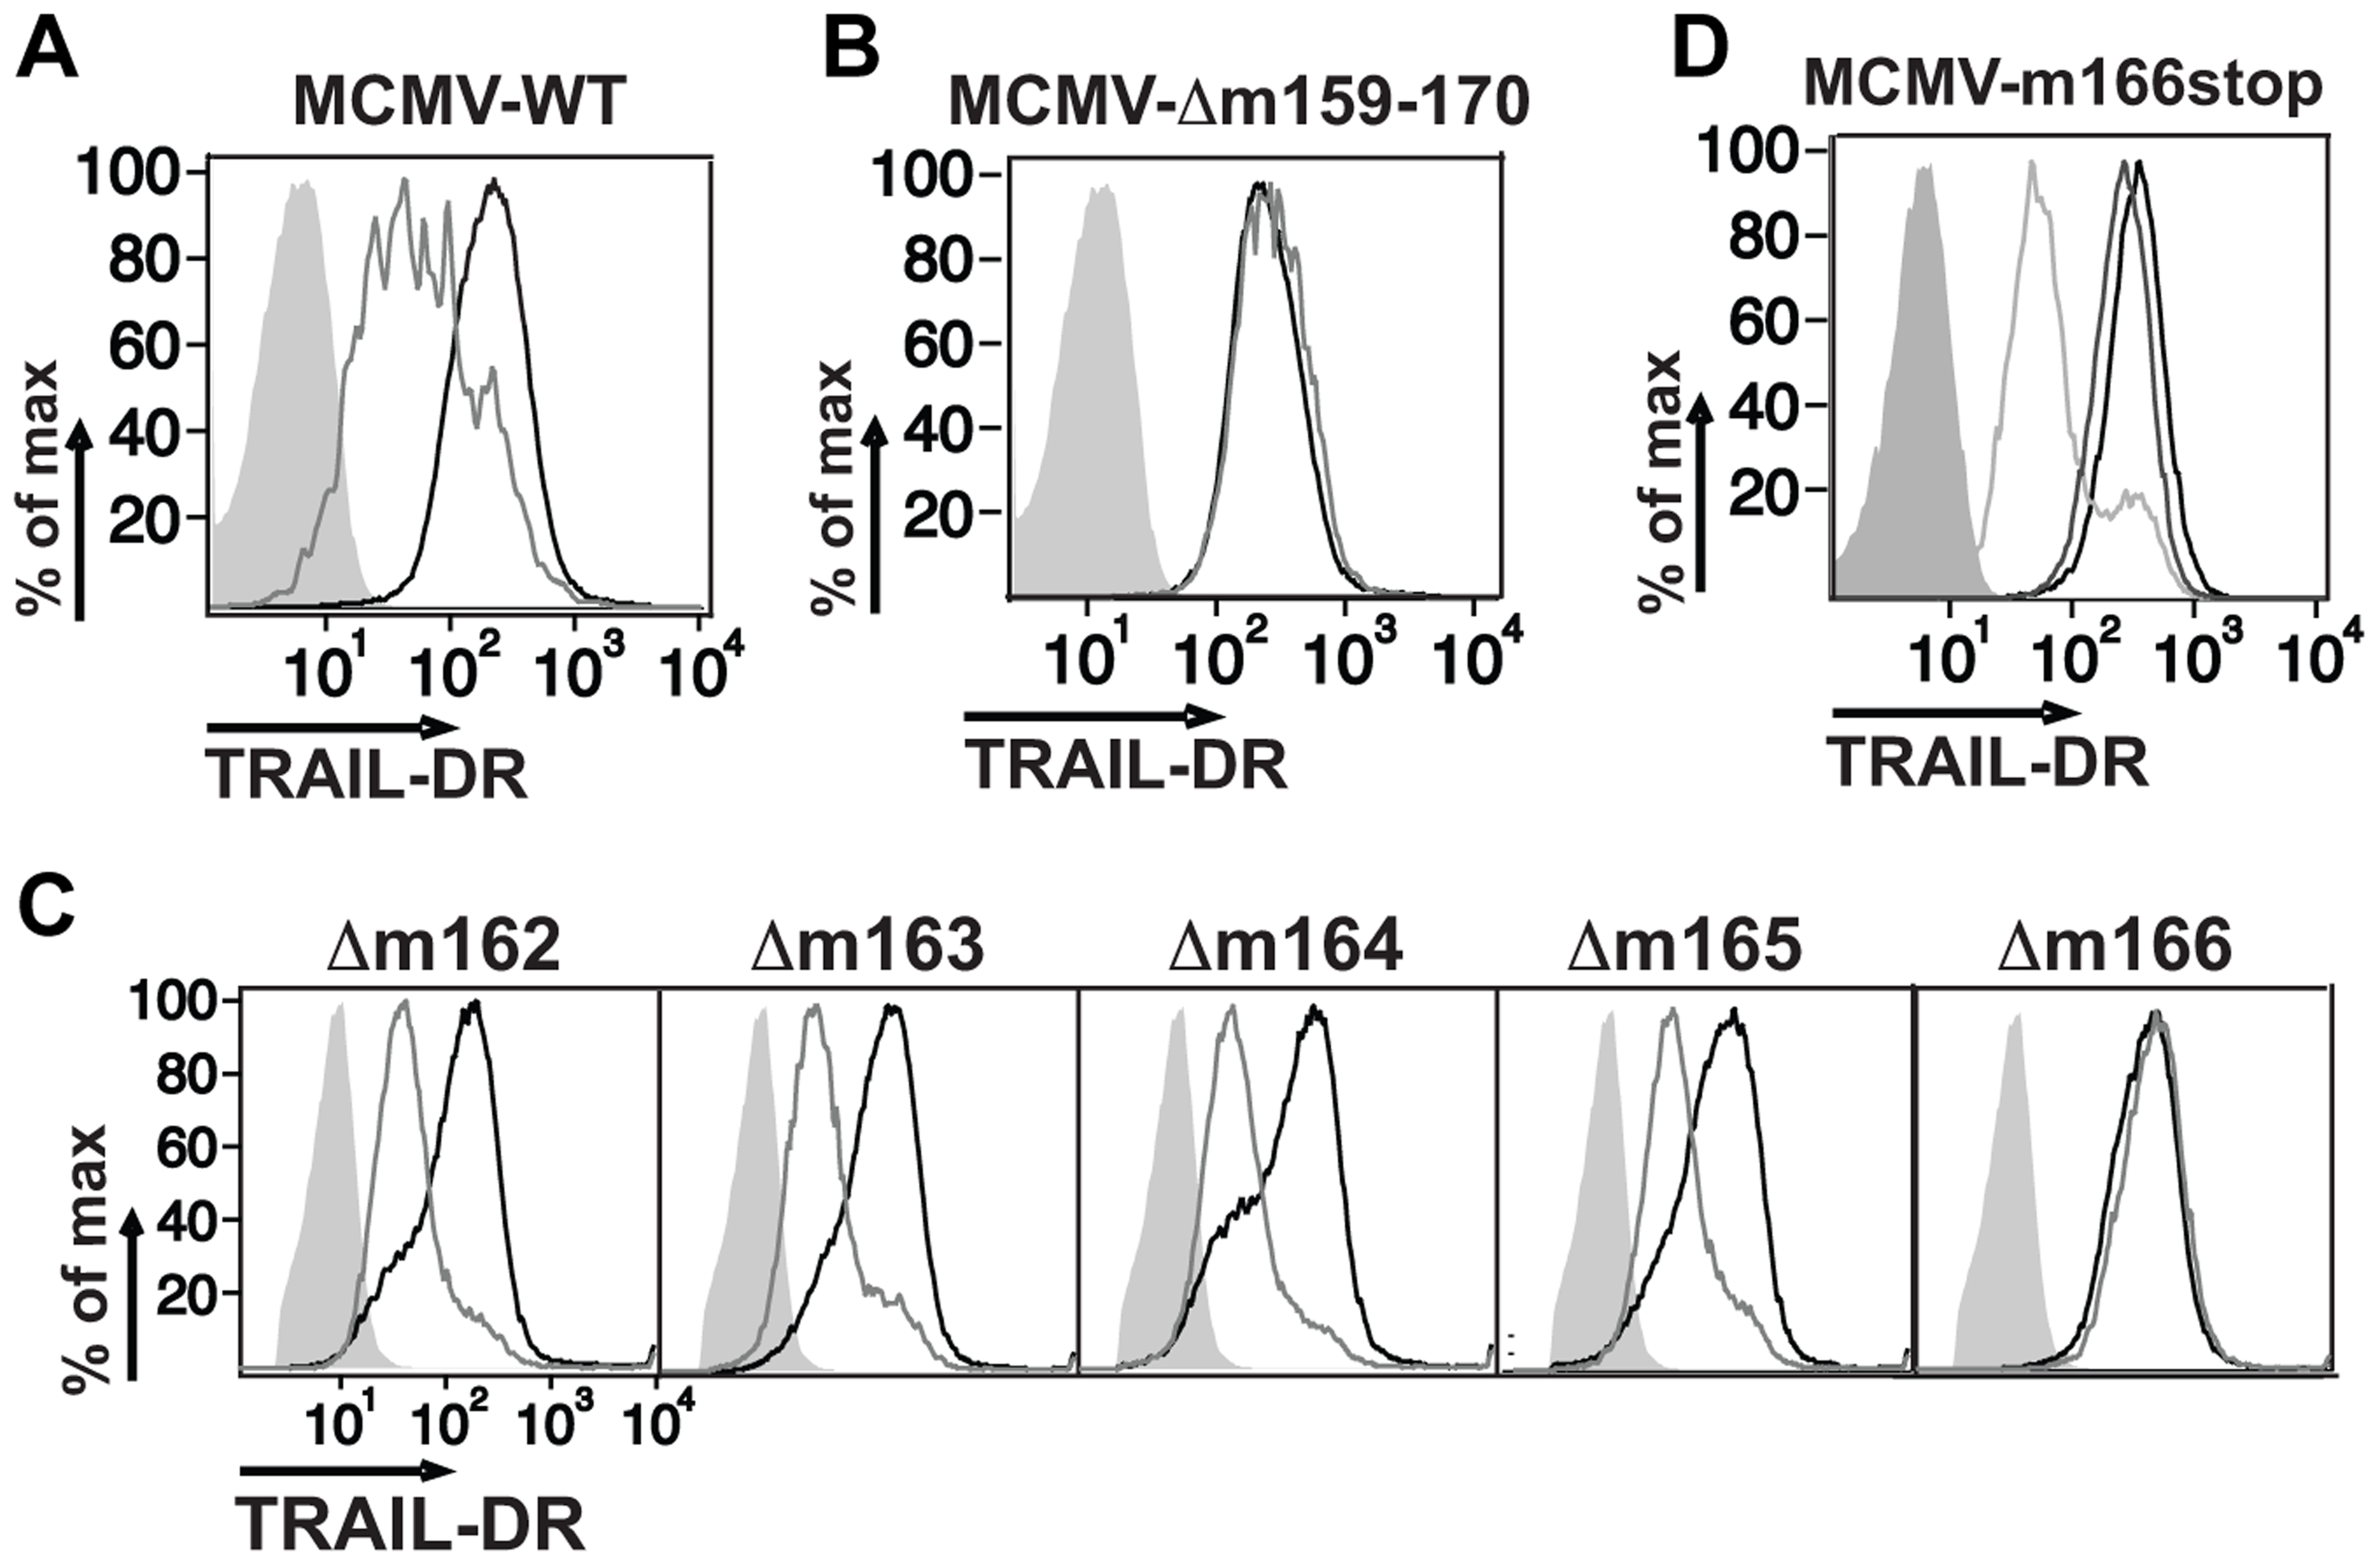 Inhibition of TRAIL-DR cell surface expression by MCMV requires m166.